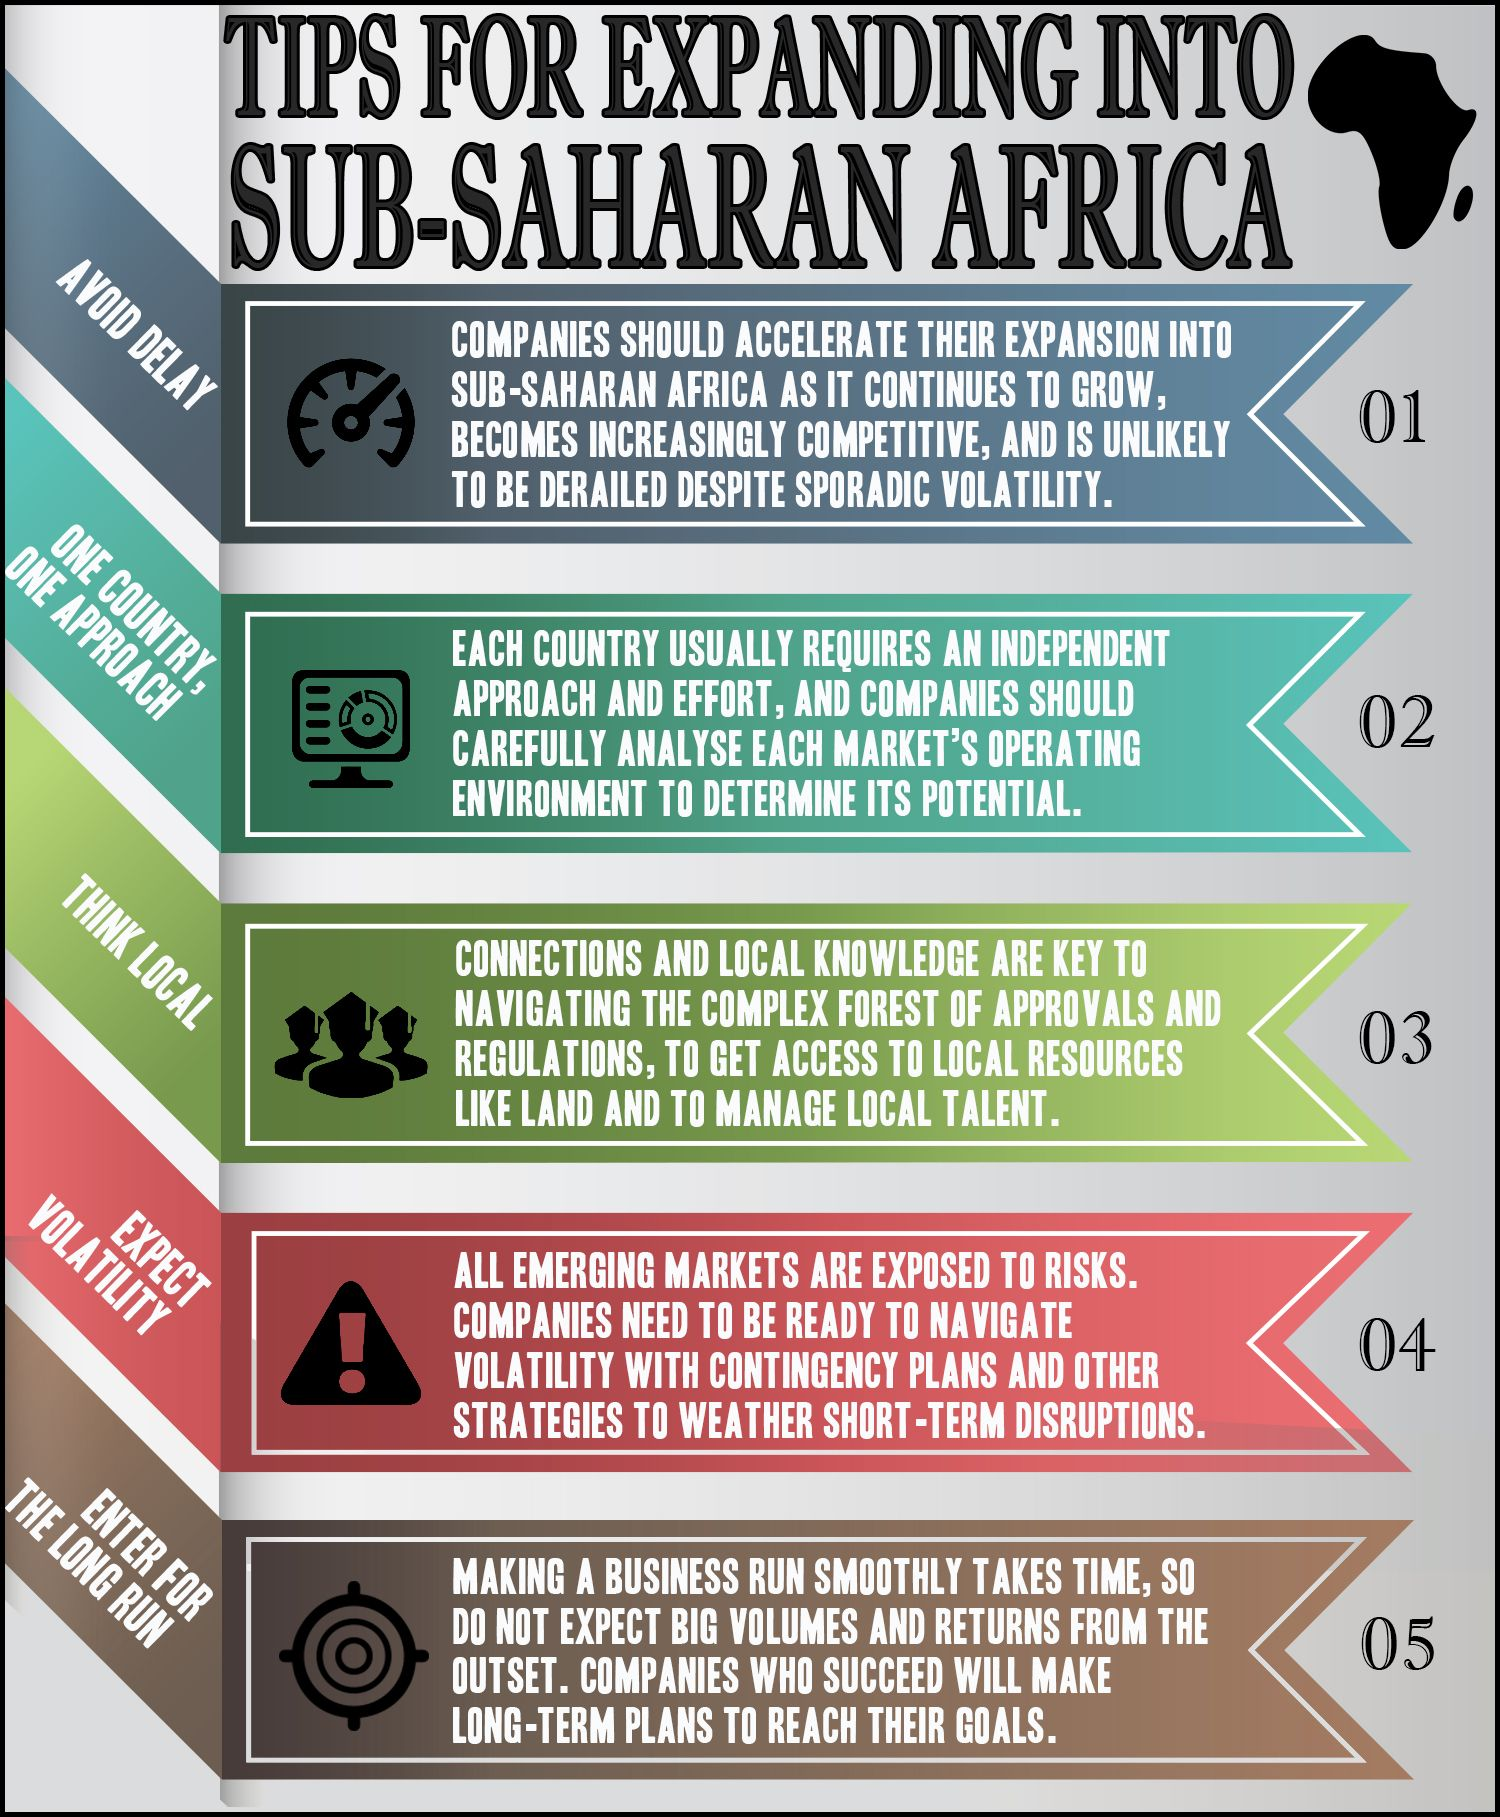 Tips for Expanding into Sub-Saharan Africa - Companies would be wise to accelerate their expansion into Sub-Saharan Africa. For a better understanding of activity in the region go to  http://www.ashaymervyn.co.uk/exploring-the-economic-potential-of-sub-saharan-africa/.